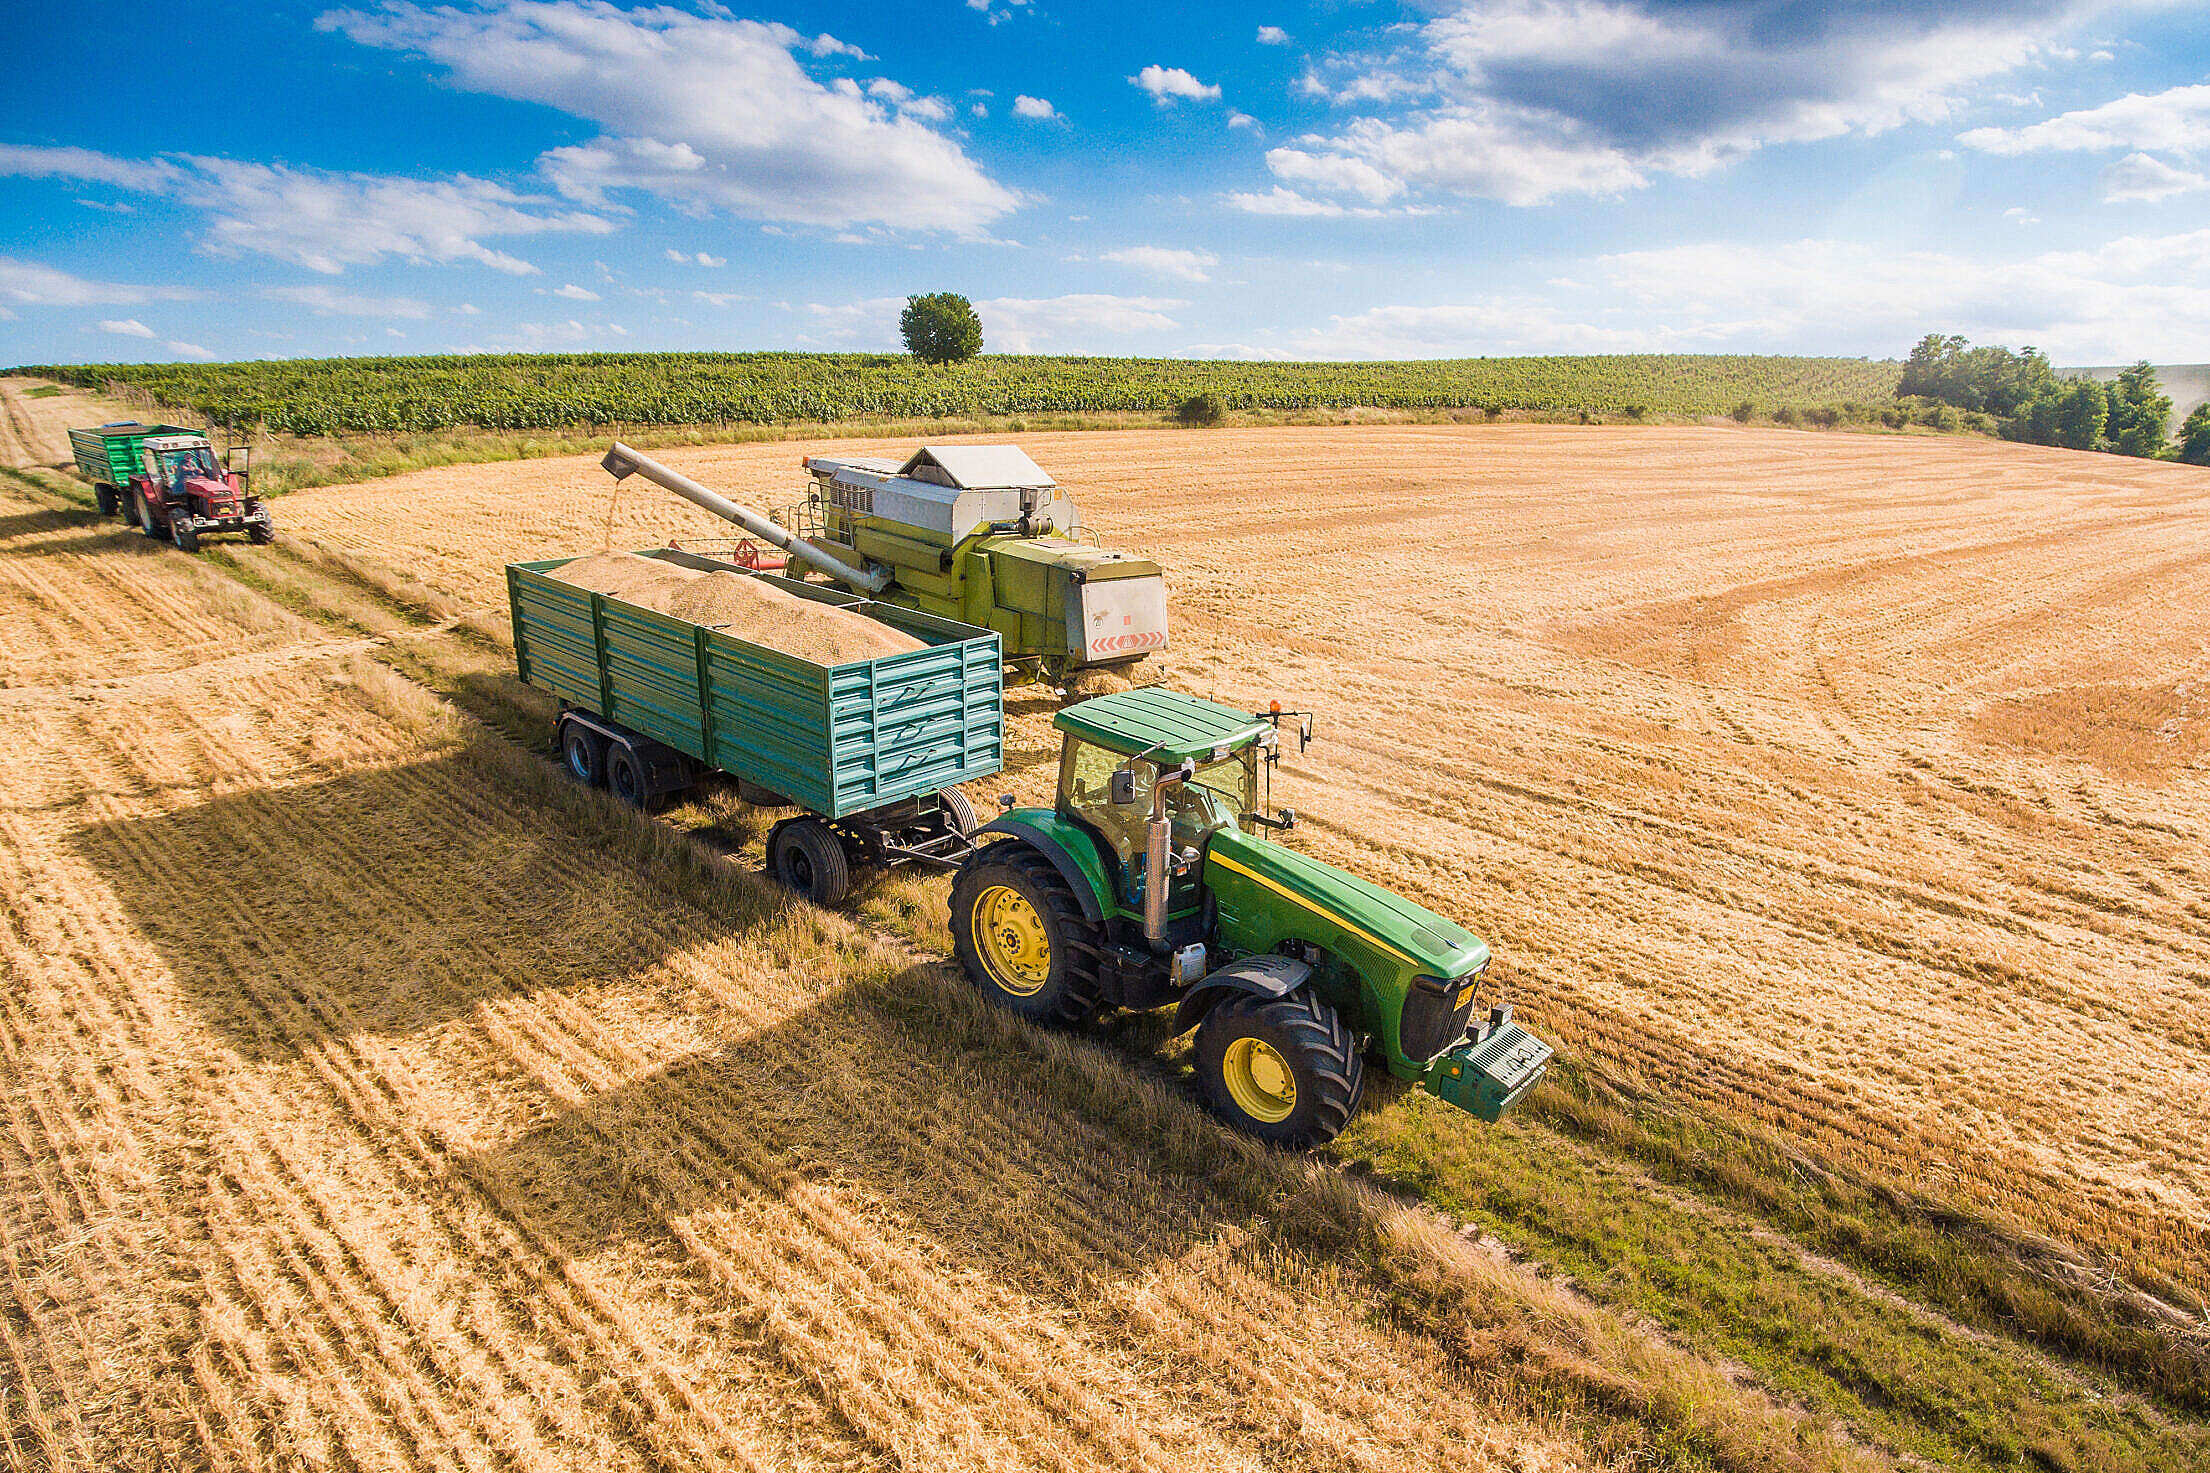 Combine Harvester Pouring Grain into Trailer Towed by Tractor Free Stock Photo